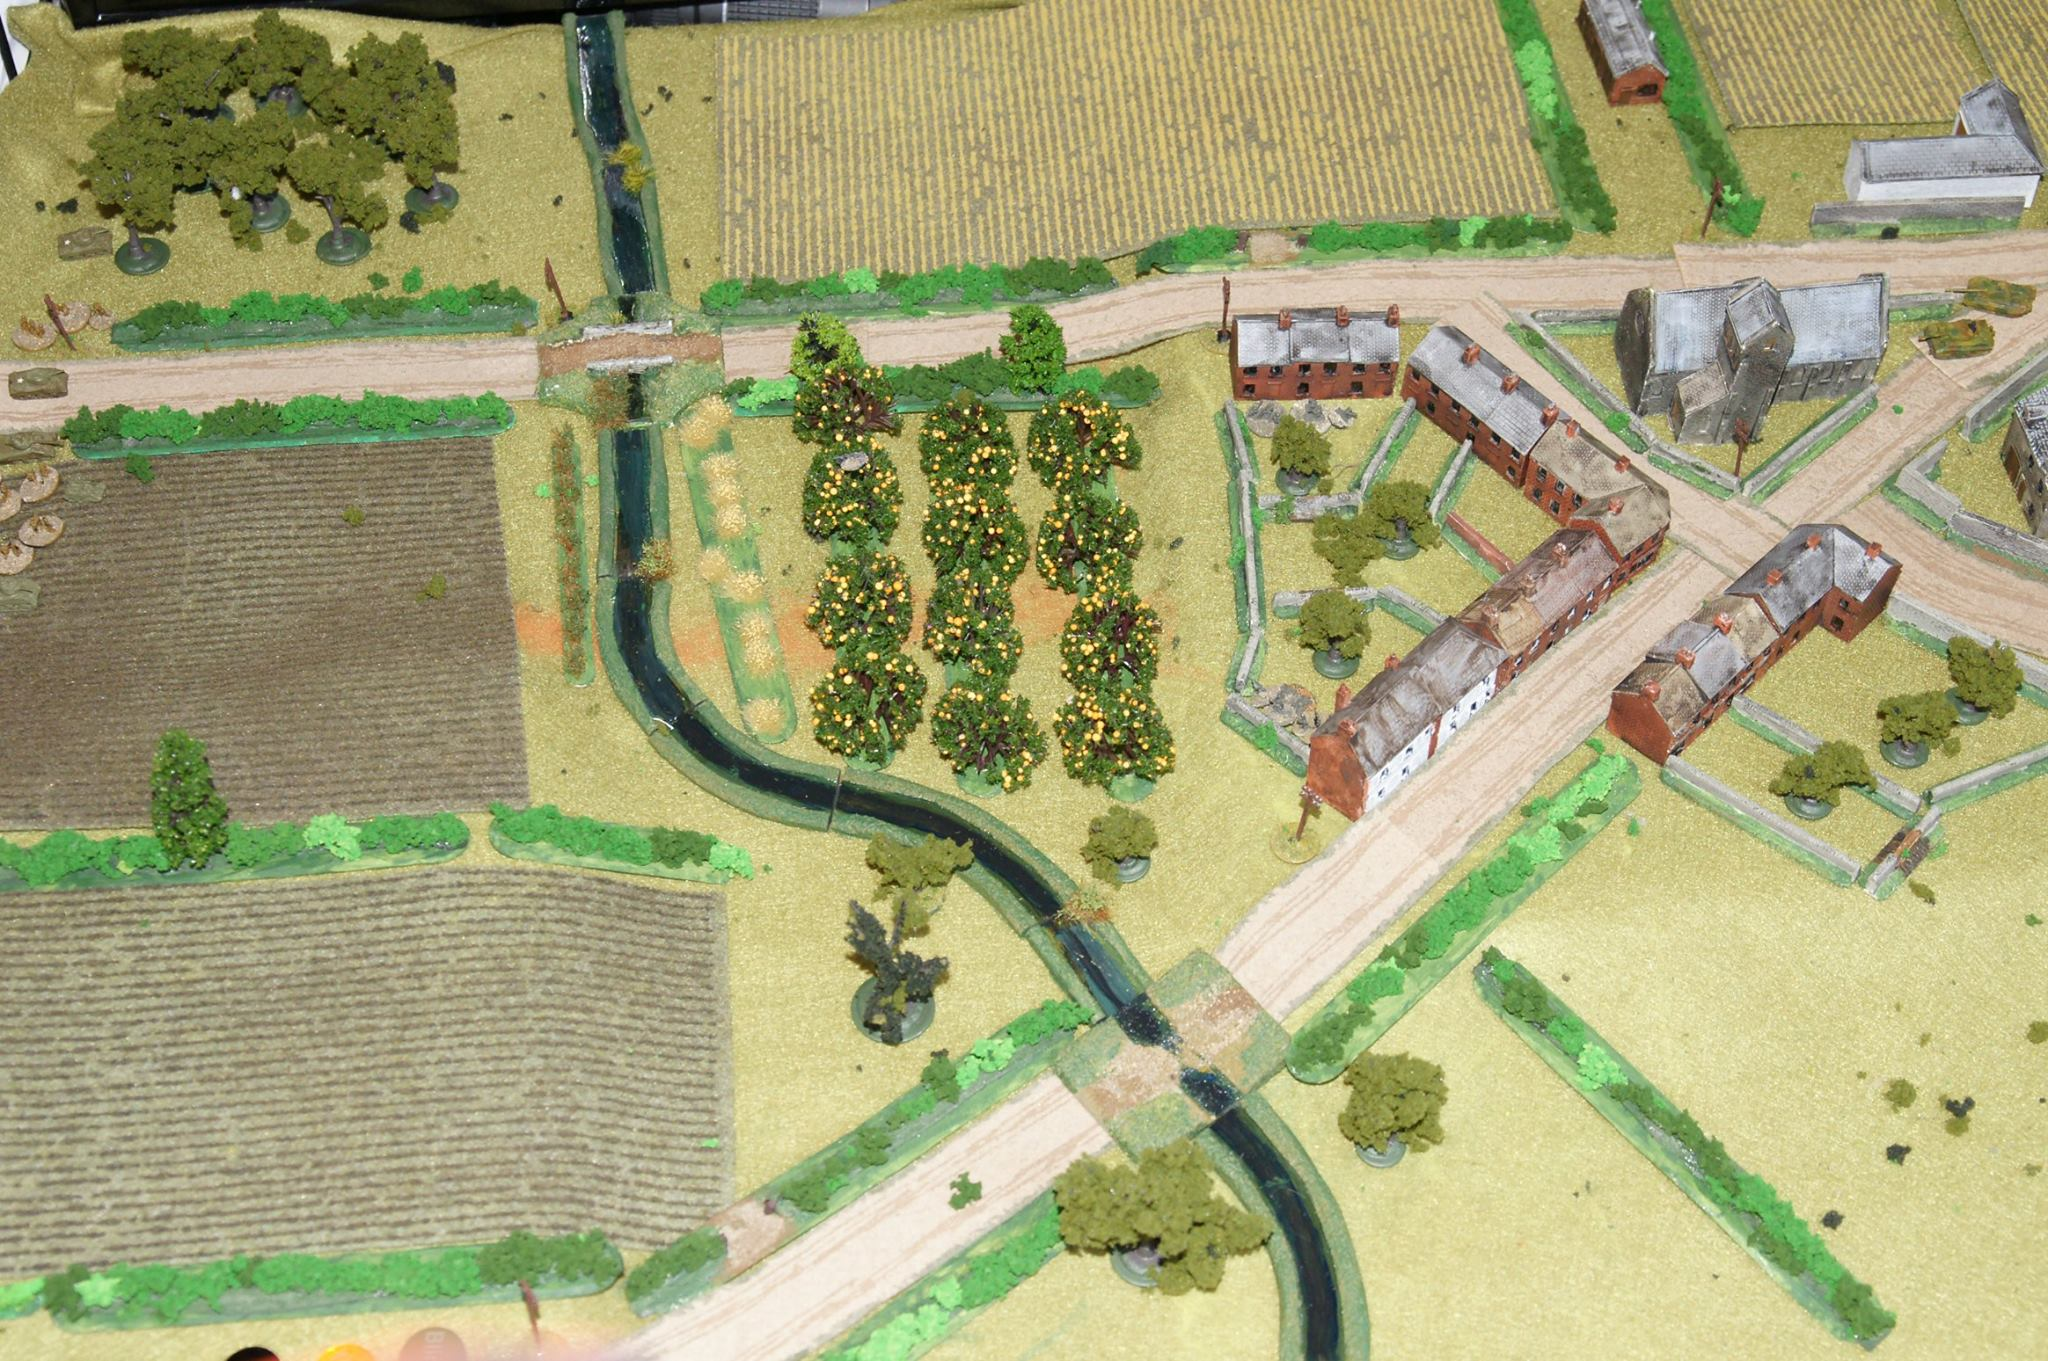 At the start of the battle, the Tiger and Panther lurk at the cross roads and two squads are deployed covering the bridges.  The British plan is to hit both bridges simultaneously, thereby not allowing the Germans to concentrate their meagre initial forces. Fireflys at the back to try and snipe the German big cats. It's a solo game, so nothing is shown under Blinds.